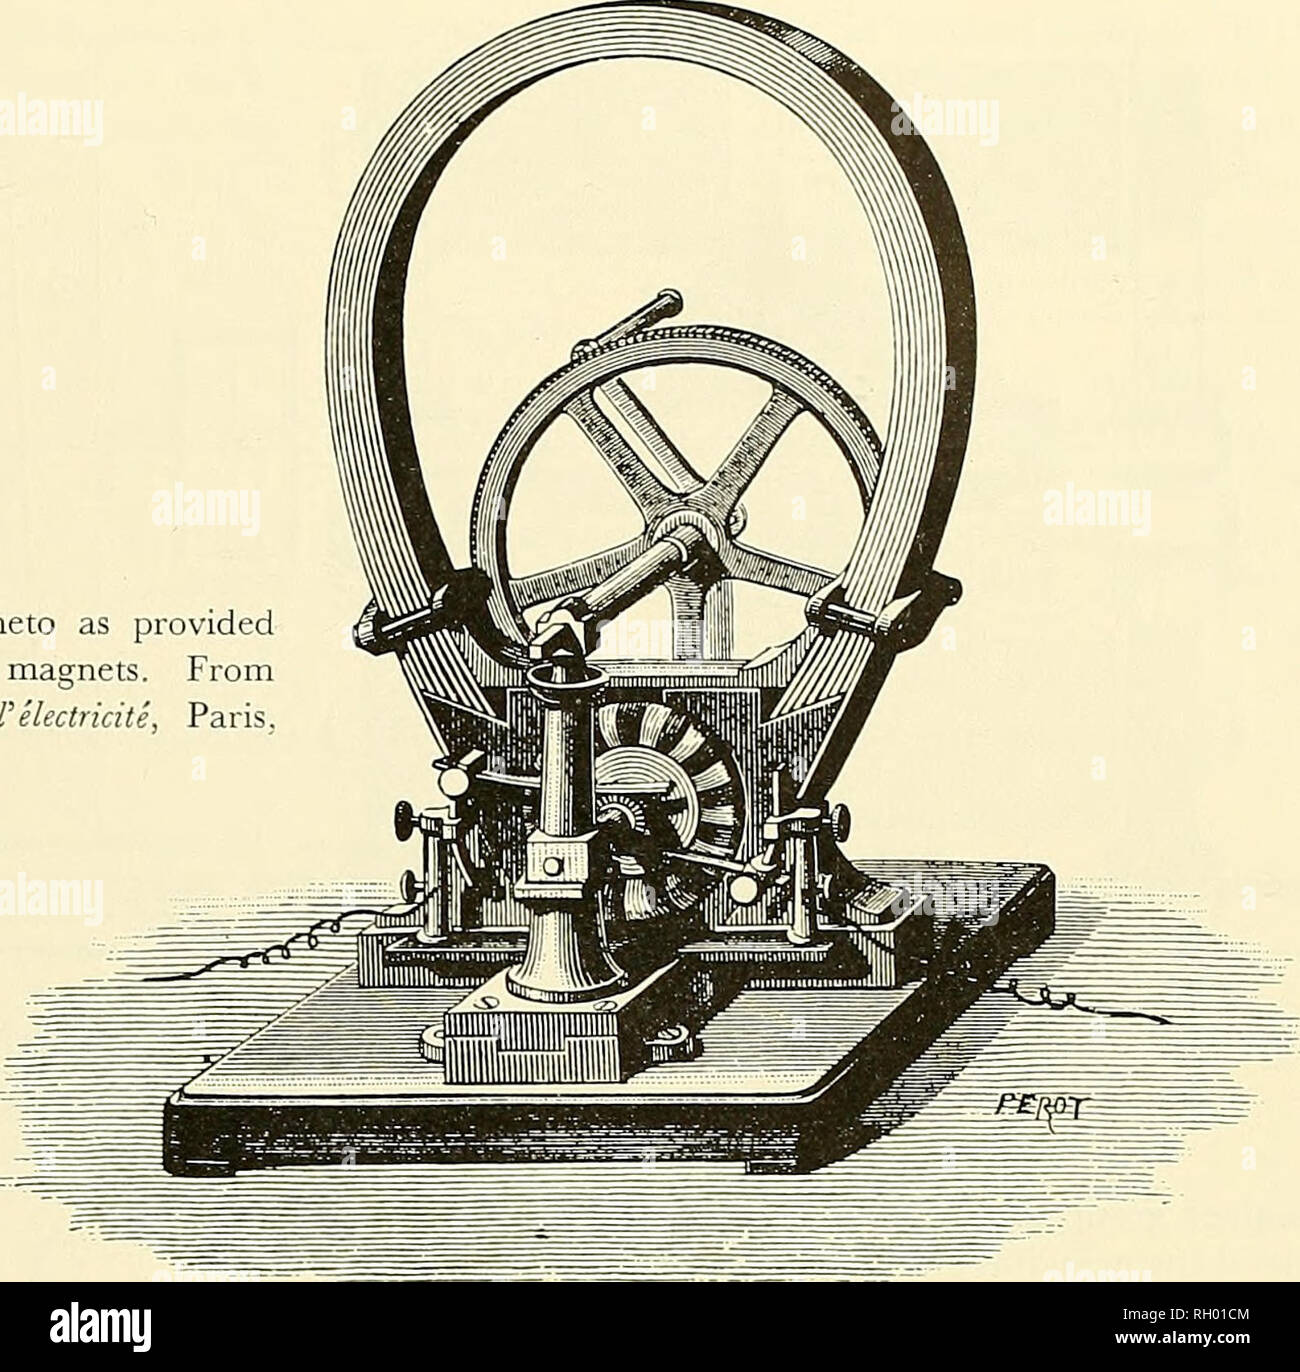 . Bulletin. Science. Figure 67.—Gramme's magneto as provided with Jamin's compound magnets. From H. Fontaine, Eclairage a I'electricite, Paris, 1877, p. 104.. 6-disk Alliance machine. The voltage was equal to that of 105 normal Bunsen cells, and the current was equal to that of 5 such cells. Roughly speaking, such power implied an efficiency of 50 percent. The cost of the machine was £400 in England. Arc-light demonstrations were made in the new Clock Tower of Parliament in London in 1873, but since the machine was quite apt to overheat the arc lights were discontinued in favor of gas.^* At th Stock Photo